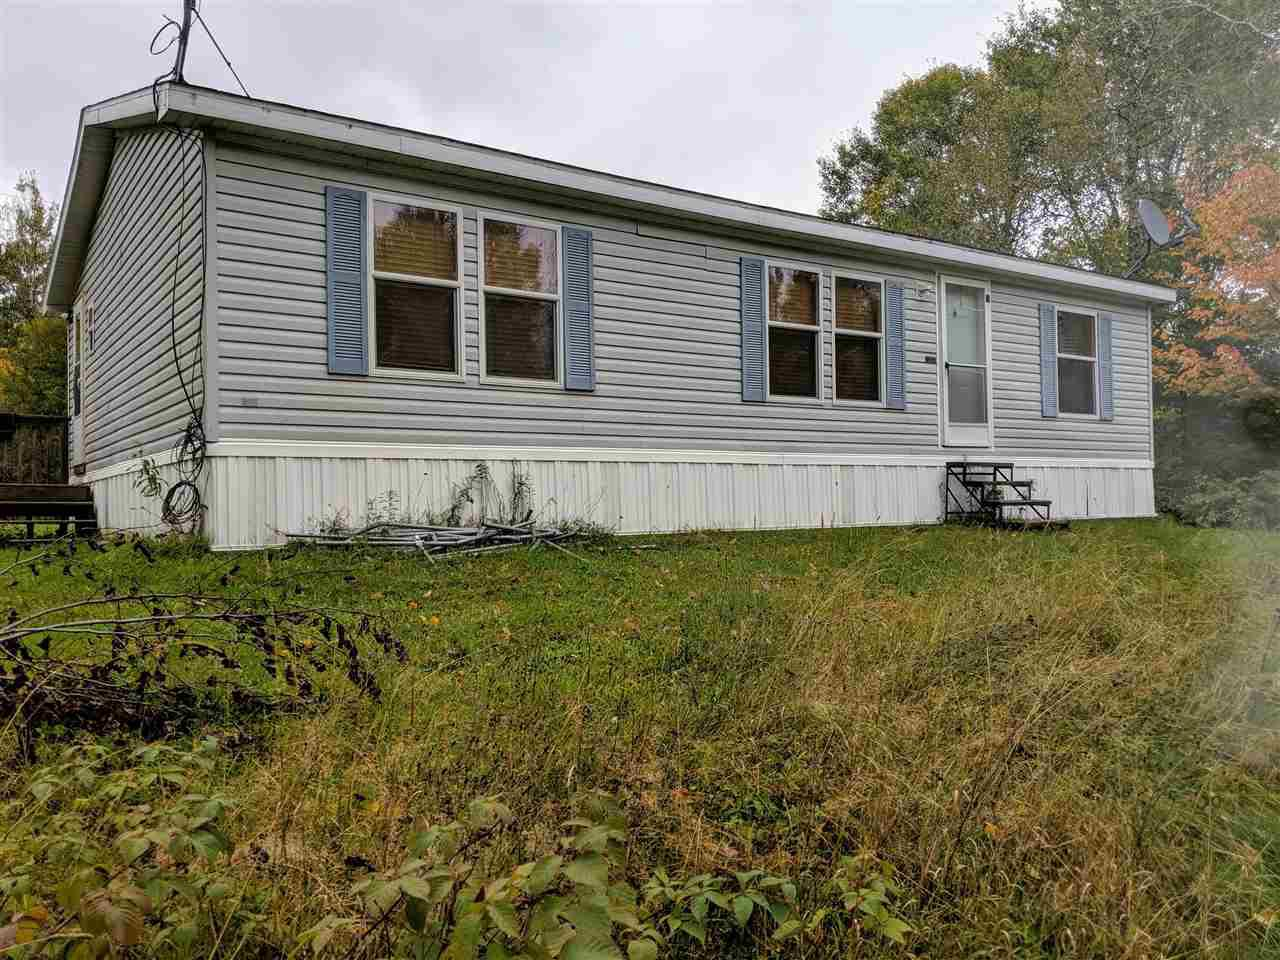 RECREATION! 3 bedroom 2 bath home on 40 acres!! The home has an open concept feel with nice size kitchen and living area. There is a master bedroom with a large walk in closet and an attached bathroom, 2 additional bedrooms and another bathroom. Outside there is a heated 1 bedroom 1 bath guest cabin that could be used as is or converted into a garage or heated work shop. This property is a great recreational paradise. It is located on the ATV route, and just minutes from Soo Lake and over hundreds of acres of public hunting land! Call today for your own private showing!